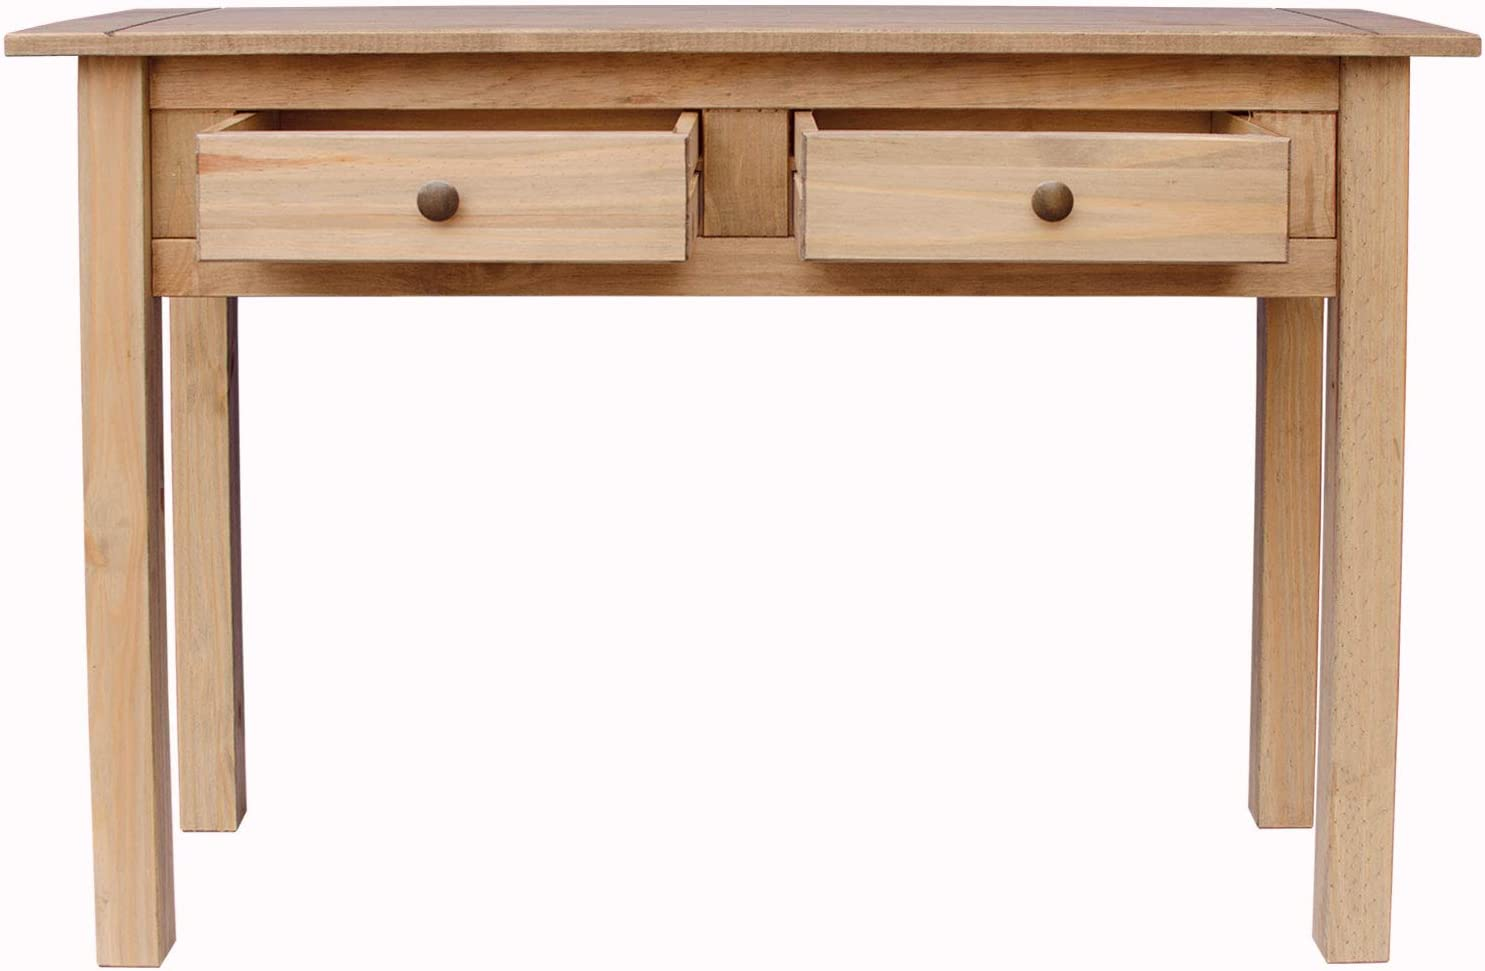 Vida Designs Panama 2 Drawer Console Table in Natural Wax